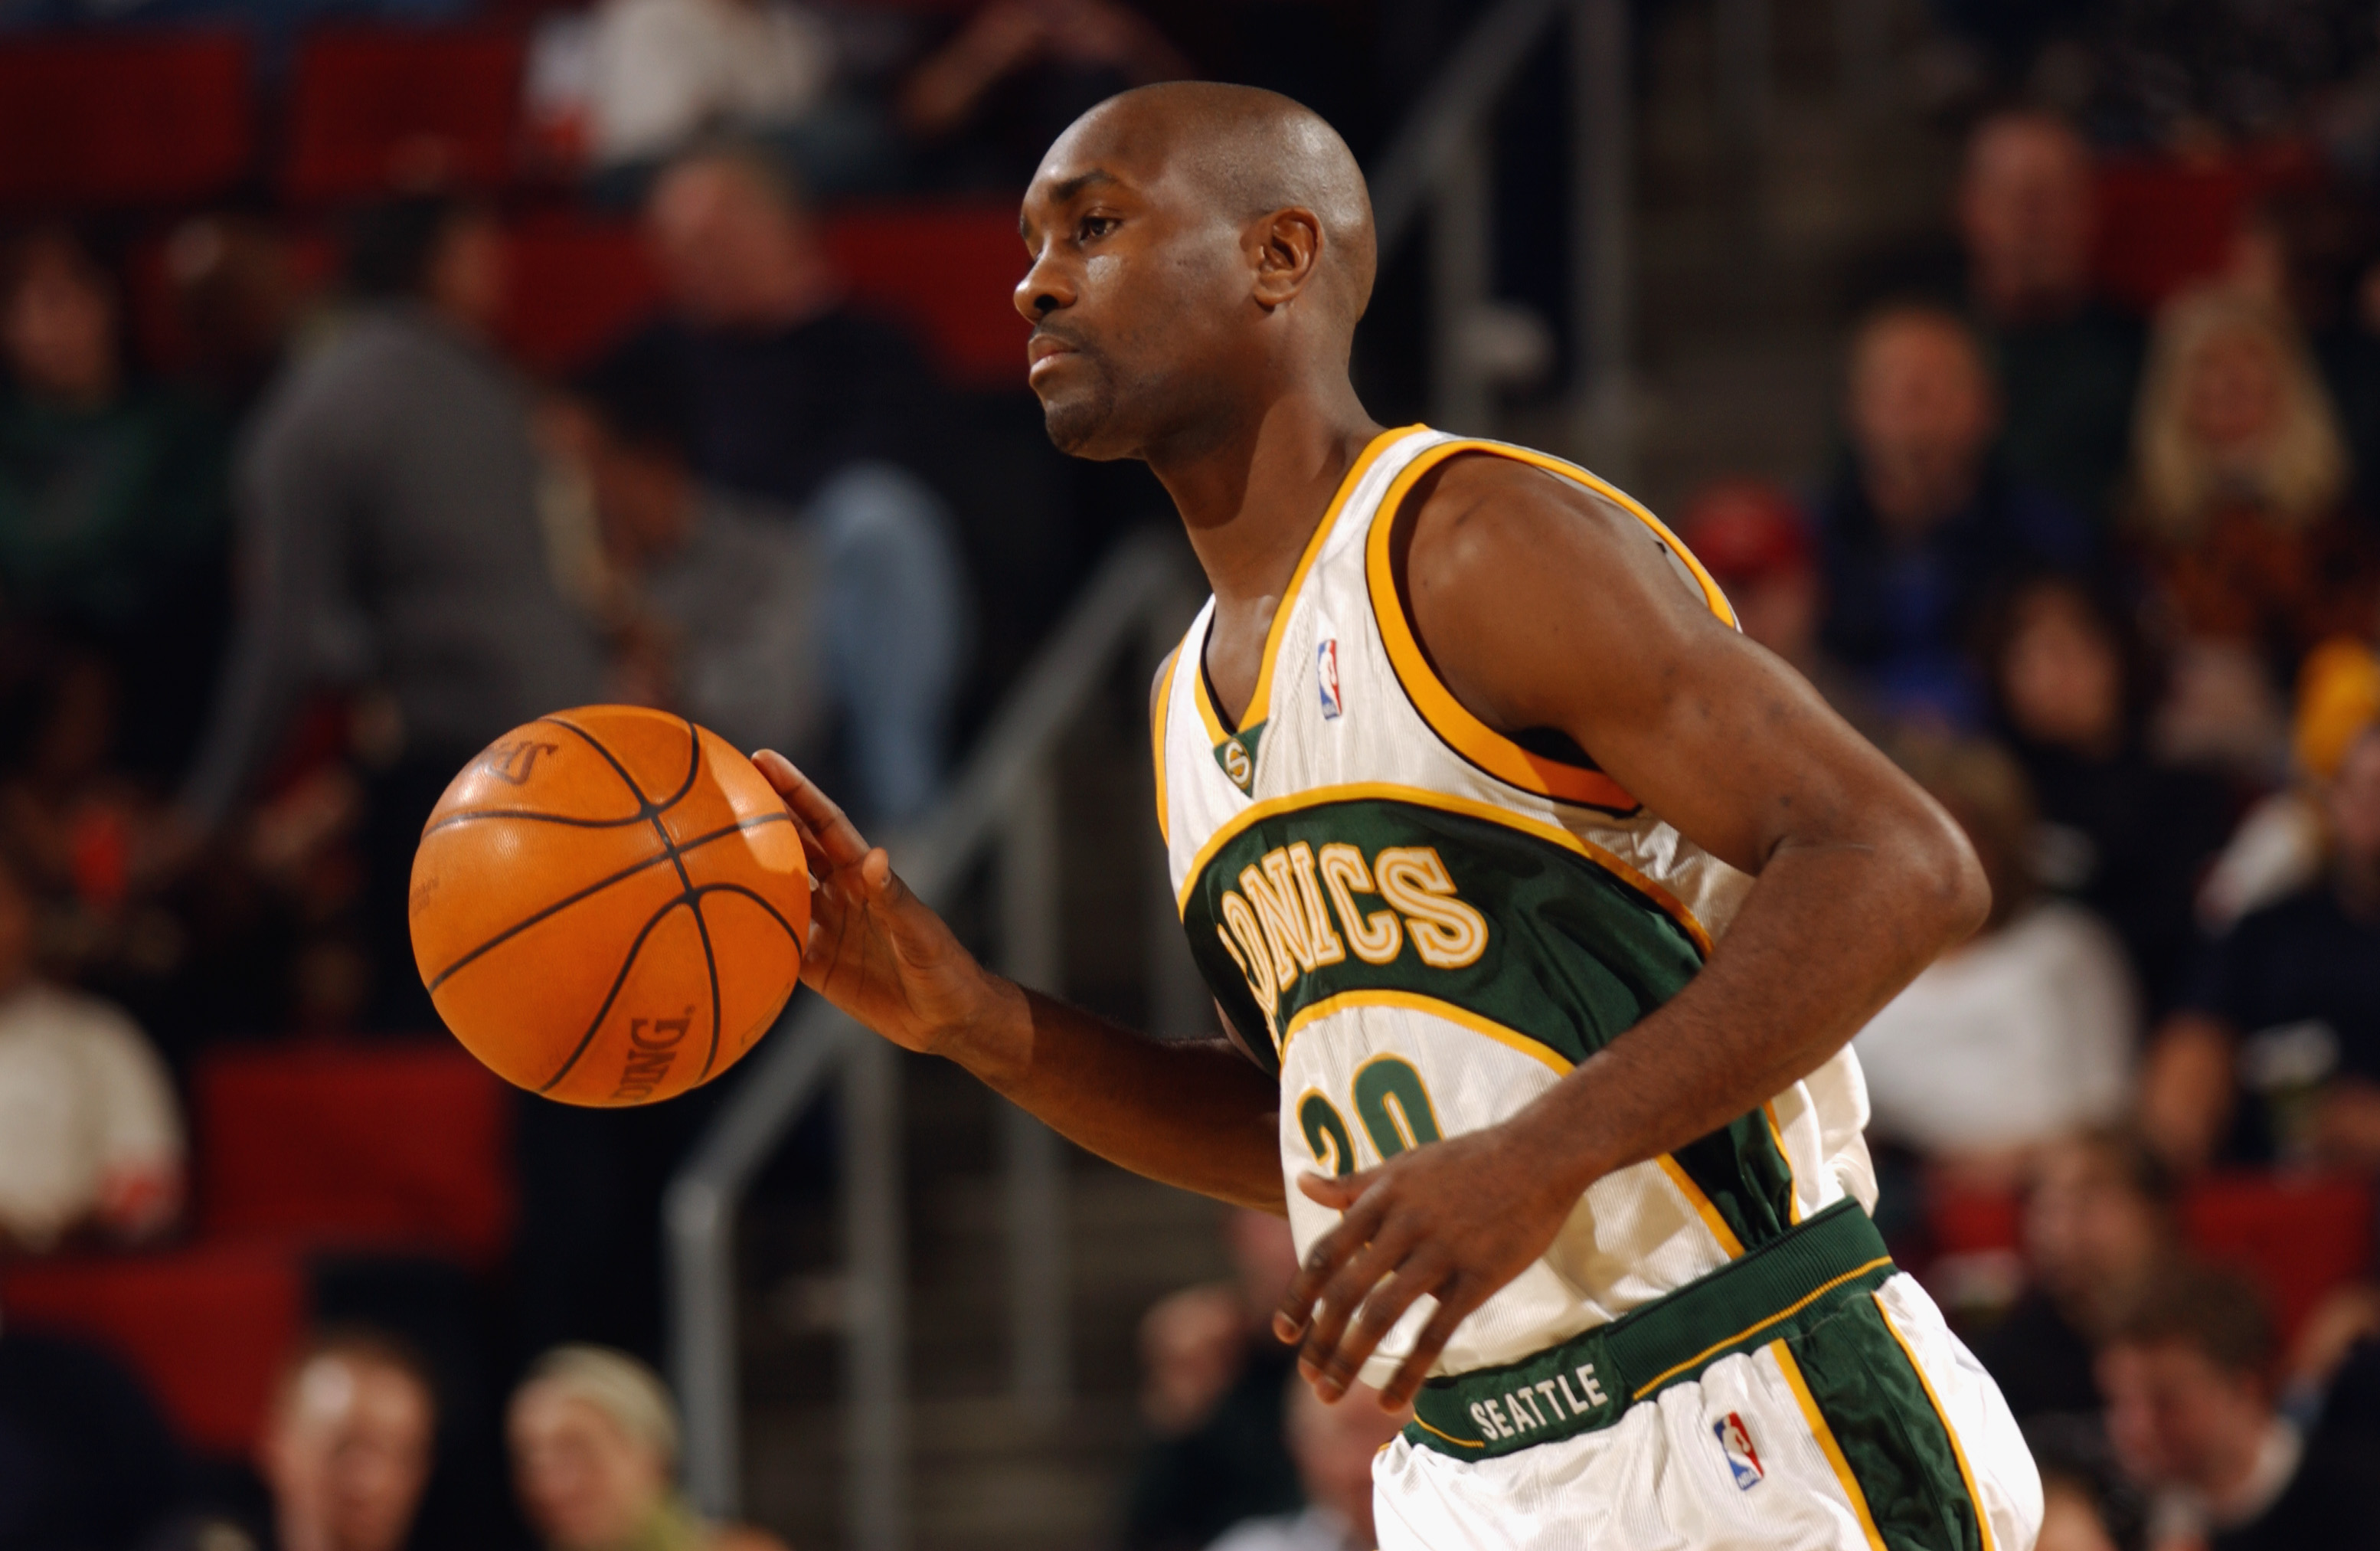 SEATTLE - OCTOBER 30:  Gary Payton #20 of the Seattle Sonics moves the ball upcourt during the game against the Phoenix Suns at Key Arena on October 30, 2002 in Seattle, Washington.  The Sonics won 86-73.  NOTE TO USER: User expressly acknowledges and agr